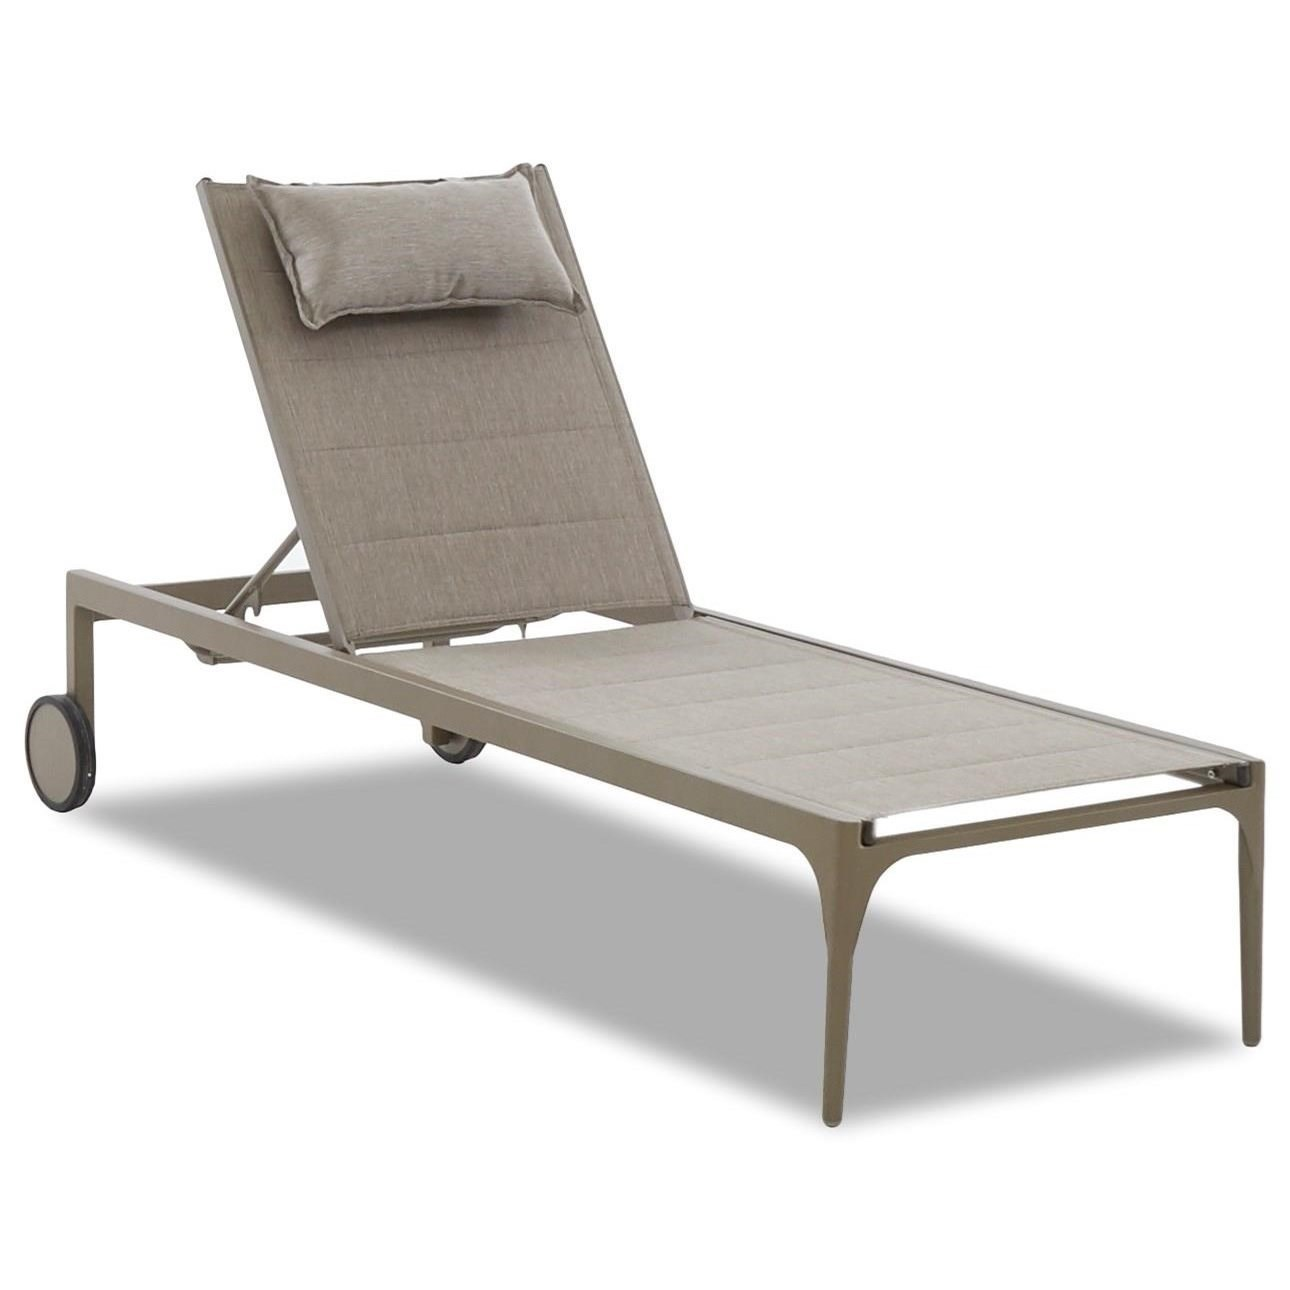 Urban Retreat Chaise Lounge by Klaussner Outdoor at Hudson's Furniture